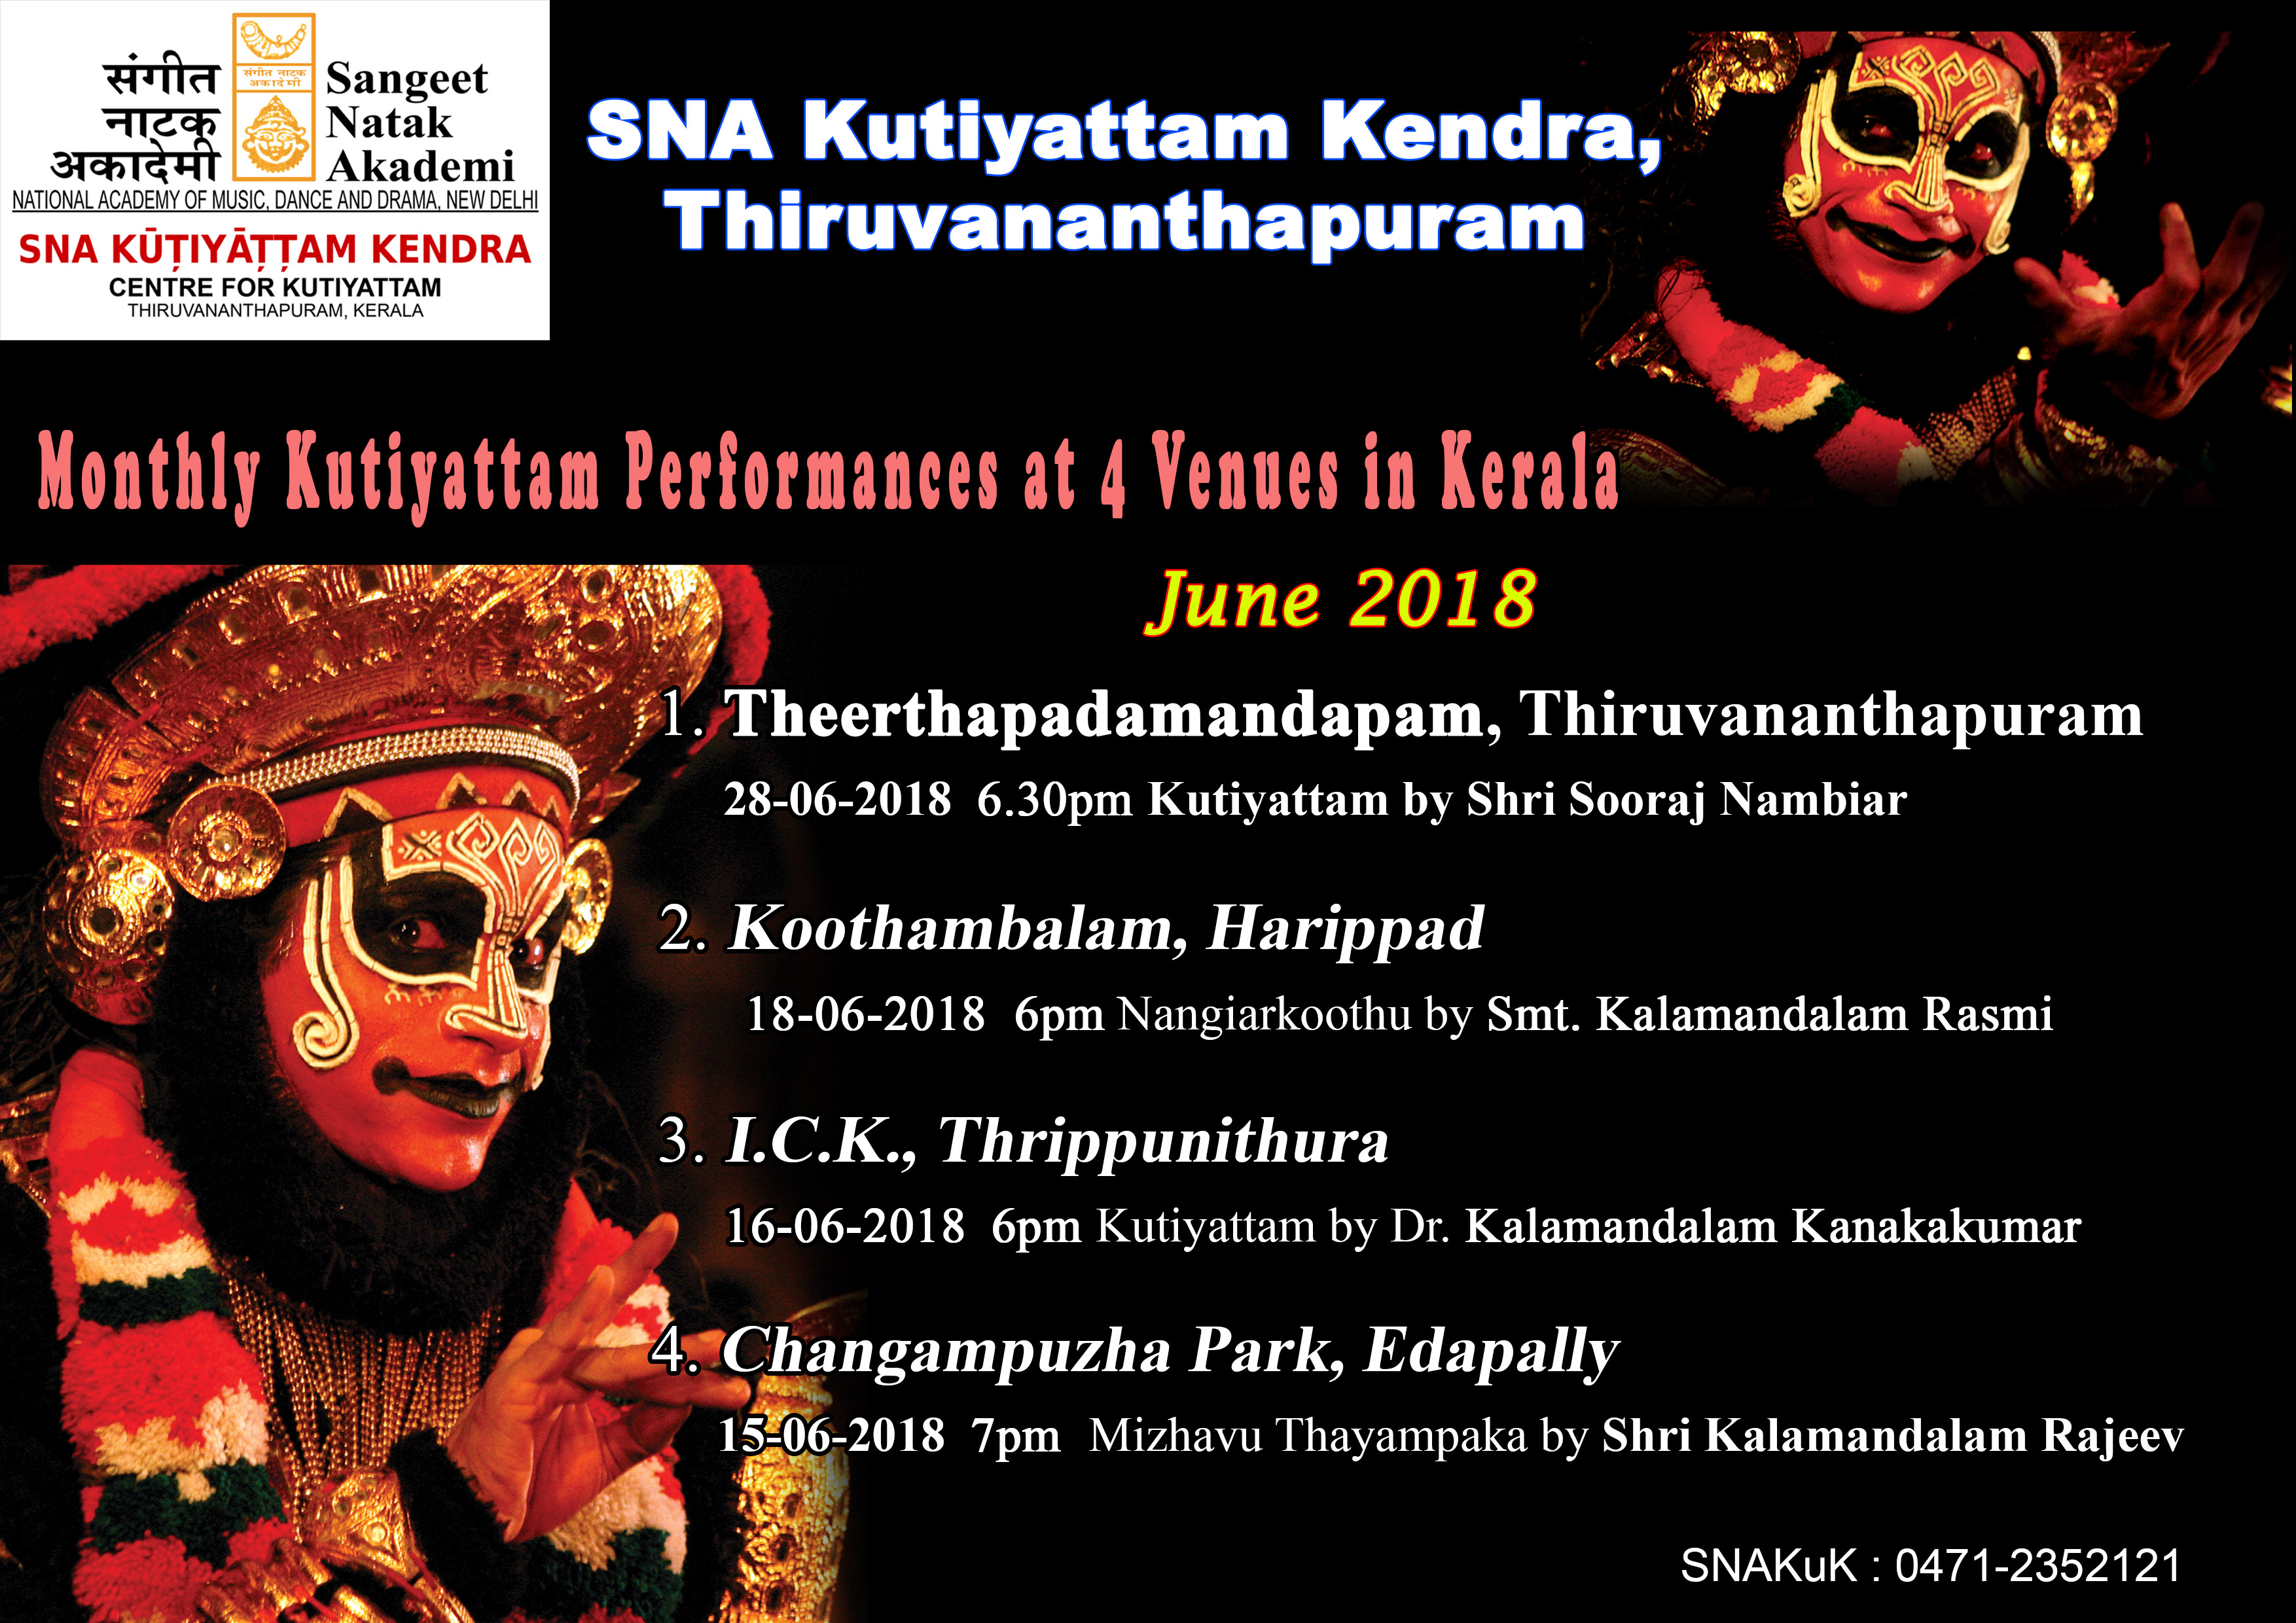 June 2018 Monthly Kutiyattam performance, SNAKuK